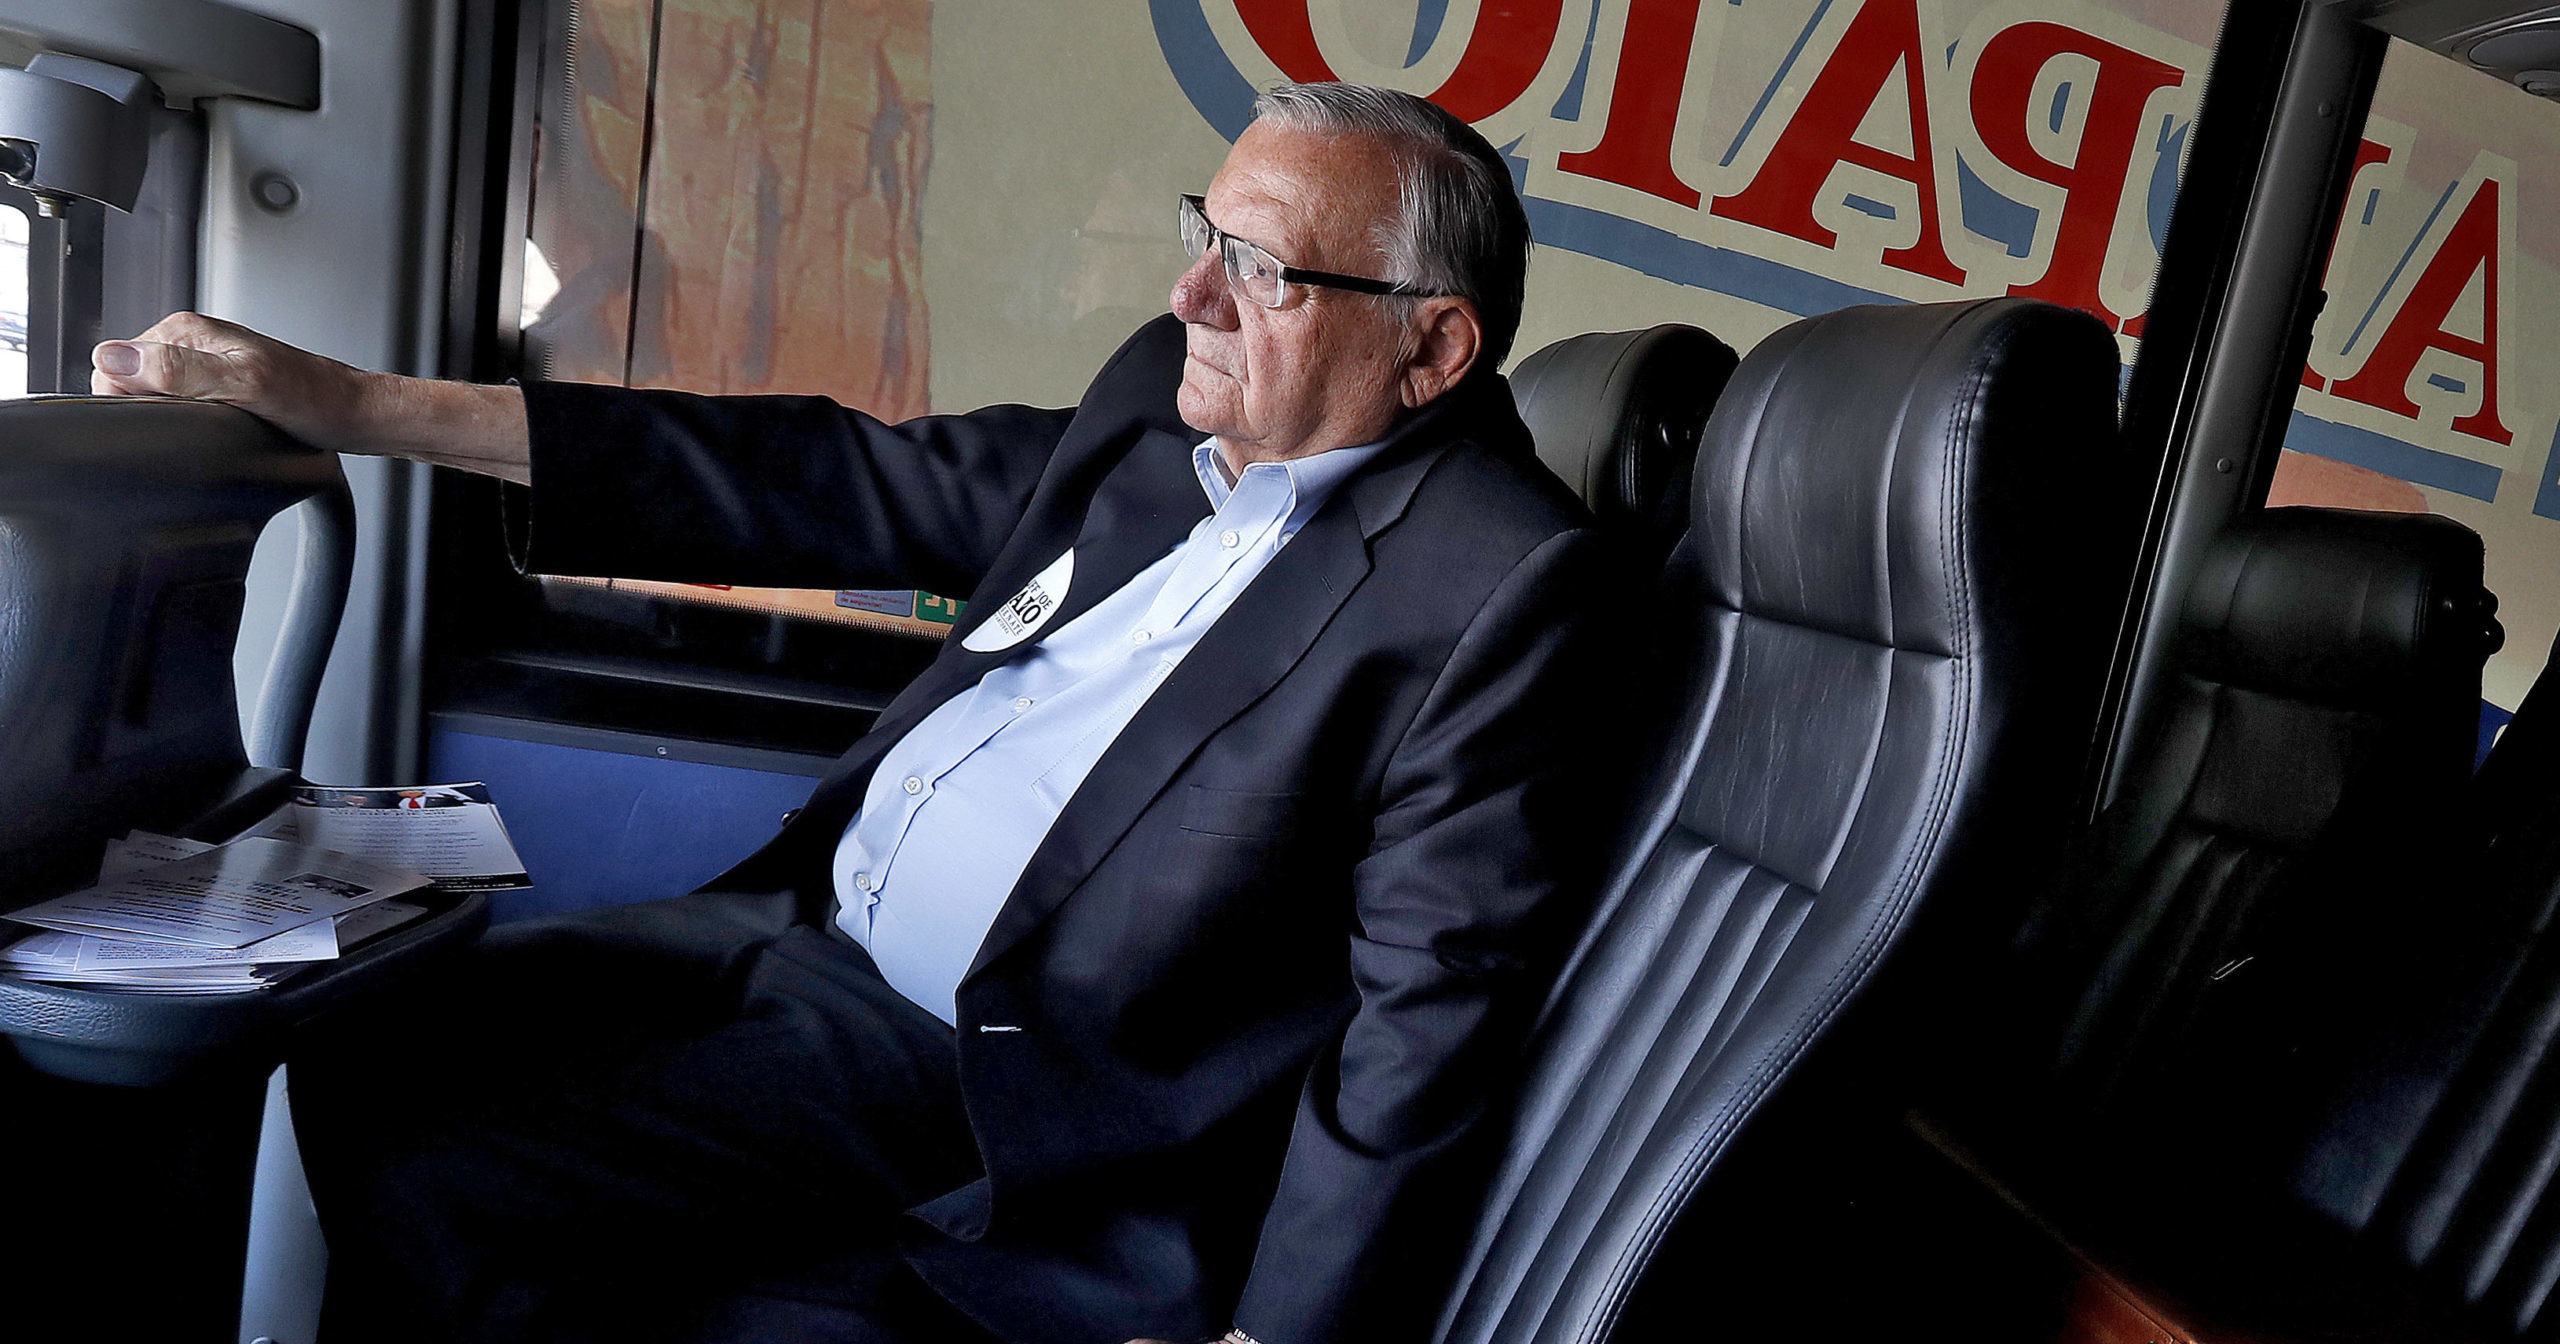 In this Aug. 23, 2018, file photo, U.S. Senate candidate and former Maricopa County Sheriff Joe Arpaio rides on his campaign bus in Phoenix. Arpaio's primary defeat in his bid to win back the sheriff's post in metro Phoenix marks the end of what's likely to be the 88-year-old lawman's last political campaign.